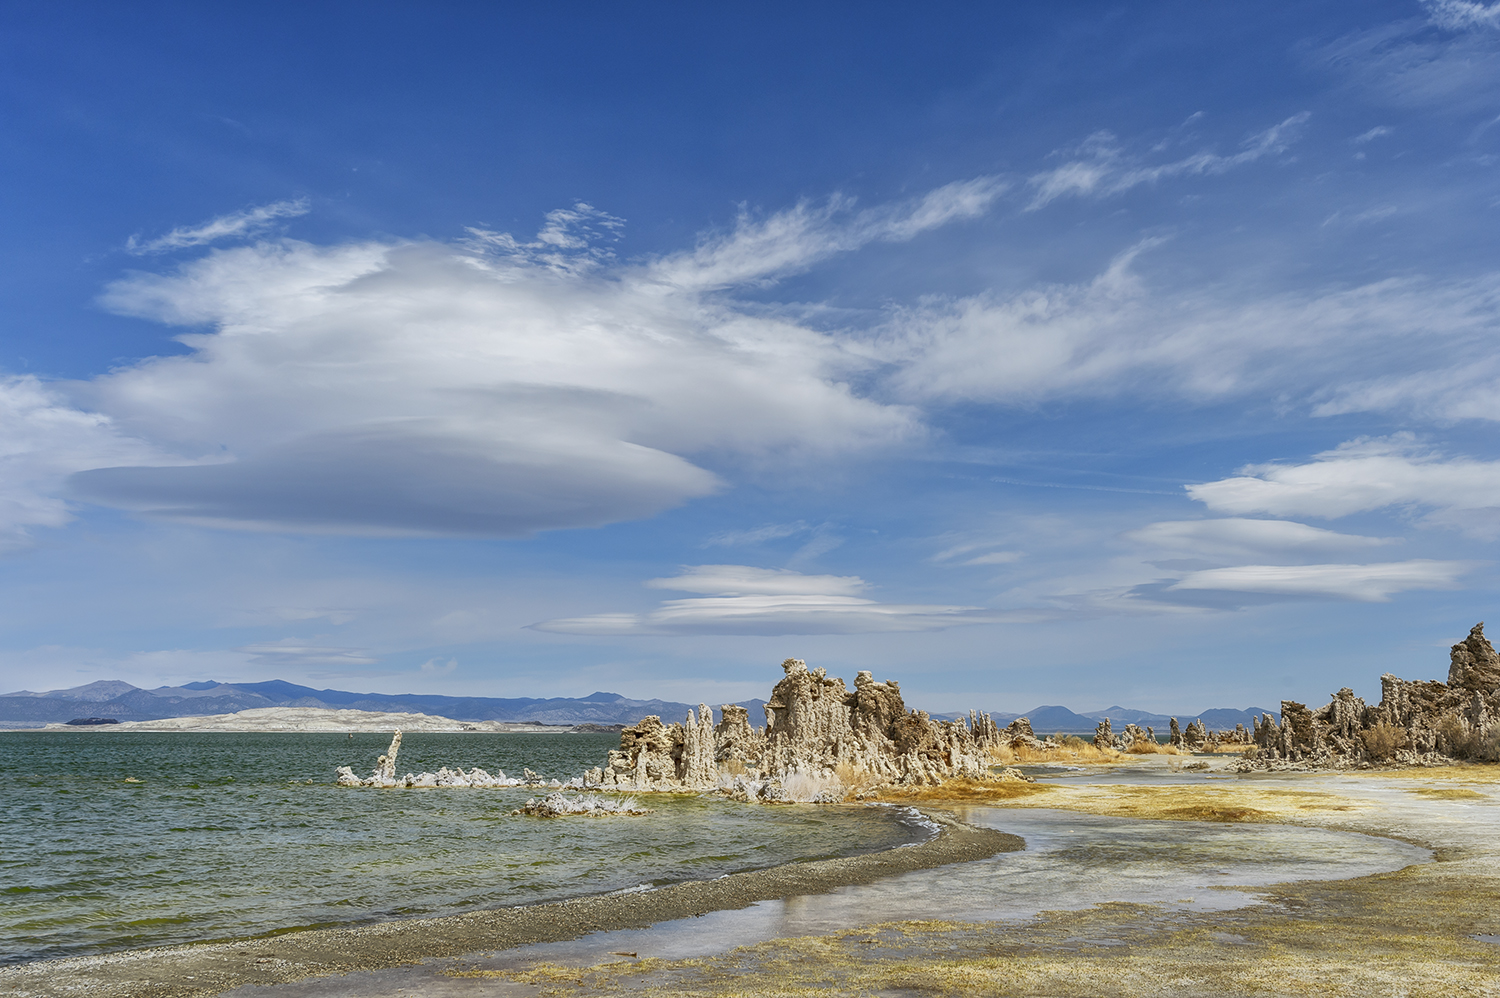 East Sierra landscape images from Mono Lake, CaliforniaImage No: 18-007953  Click HERE to Add to Cart